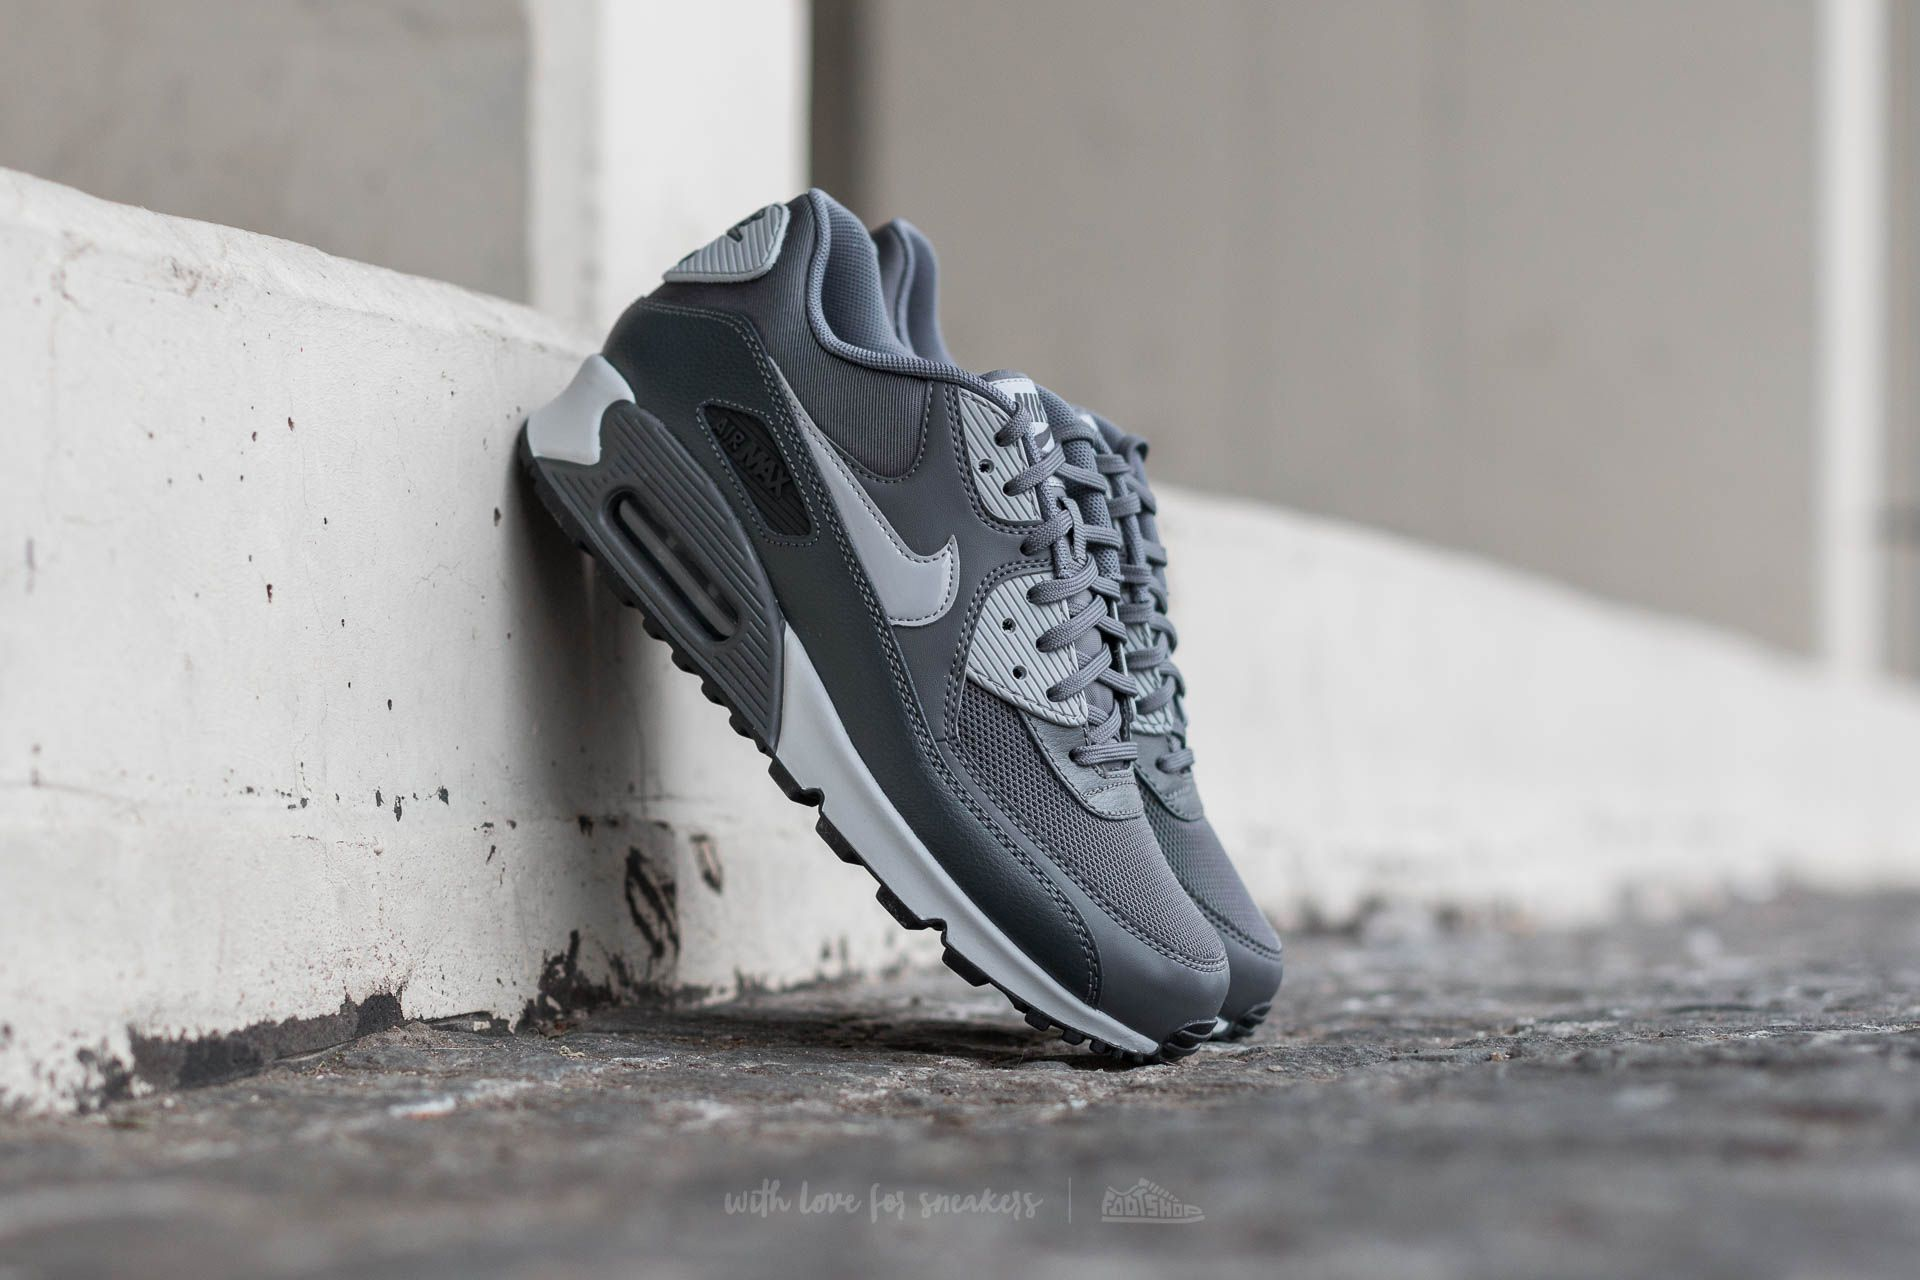 meet d2138 01b55 Nike Wmns Air Max 90 Essential. Dark Grey  Wolf Grey-Anthracite